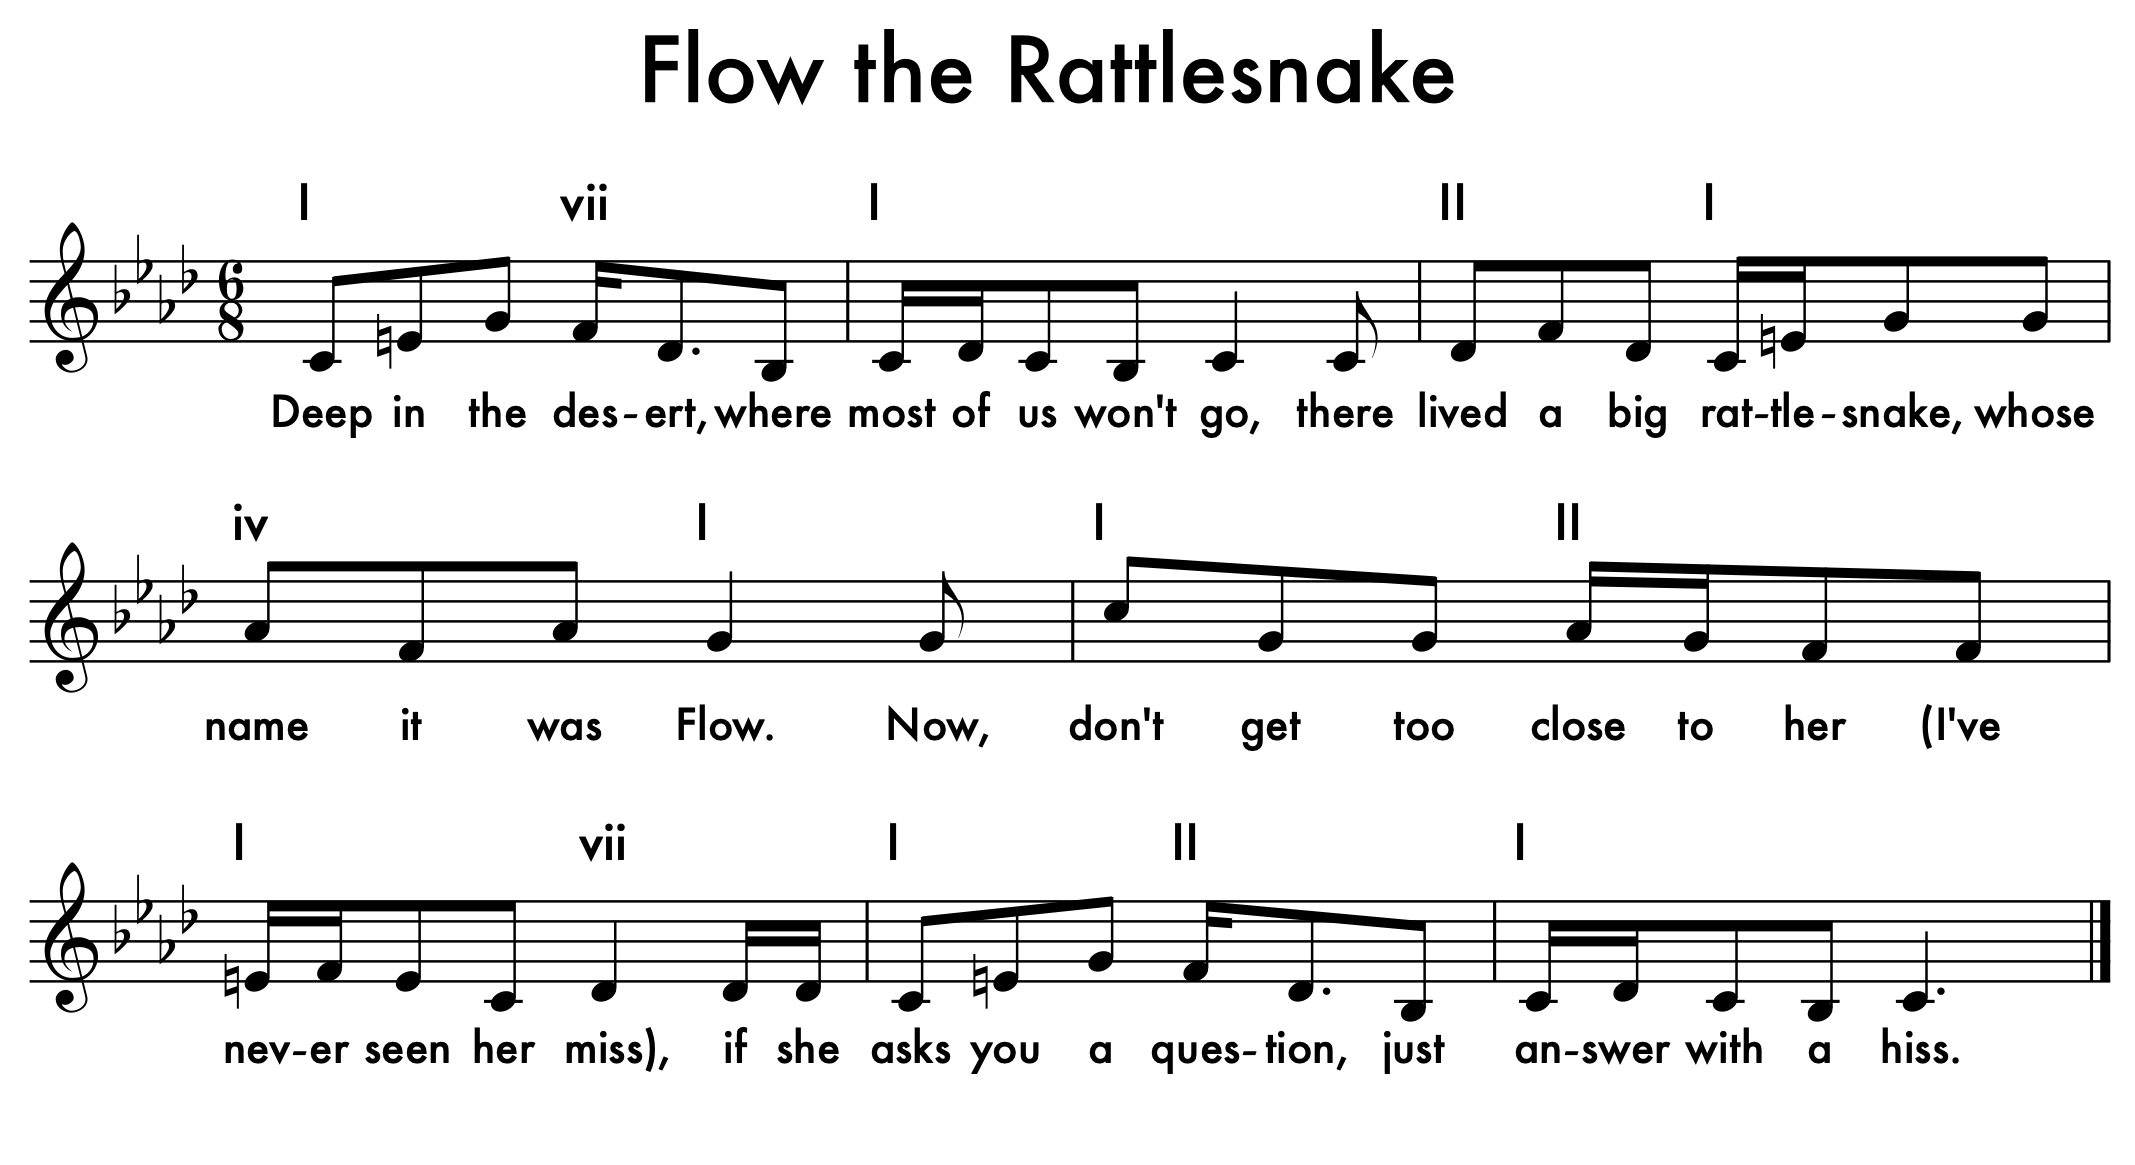 Flo the Rattlesnake-melody